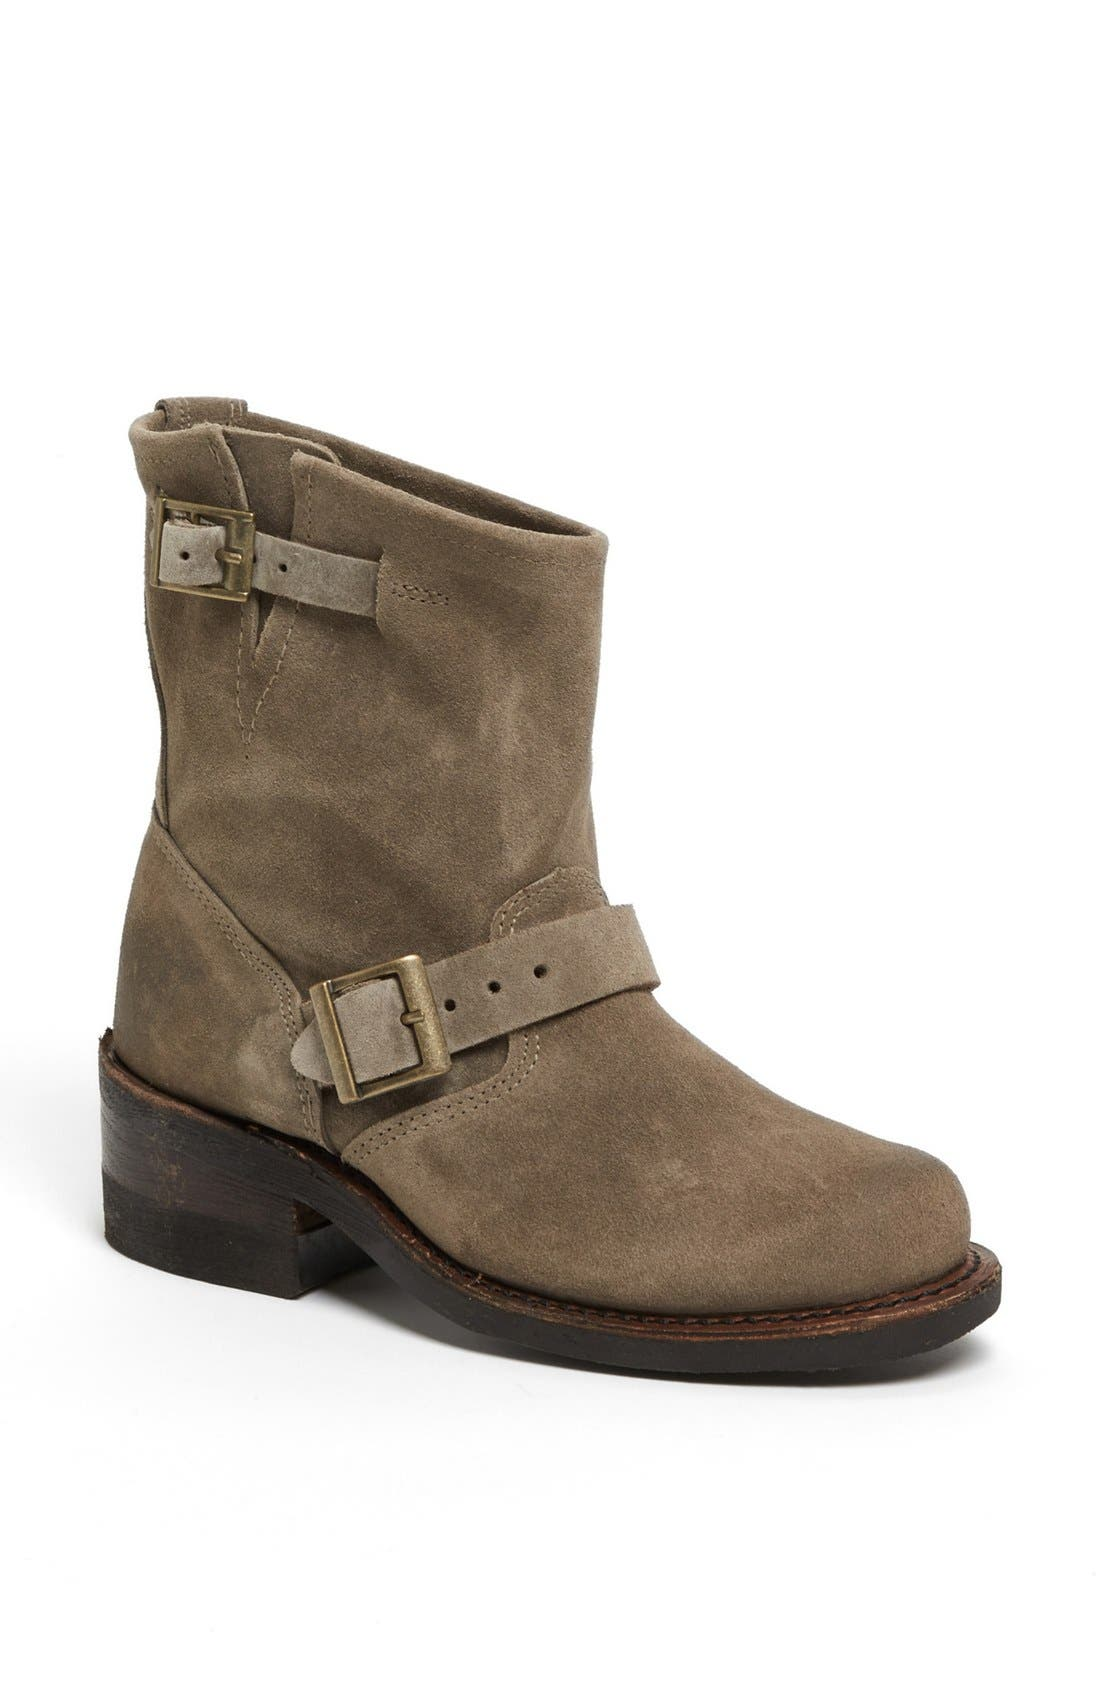 Alternate Image 1 Selected - Vintage Shoe Company 'Sophie' Suede Boot